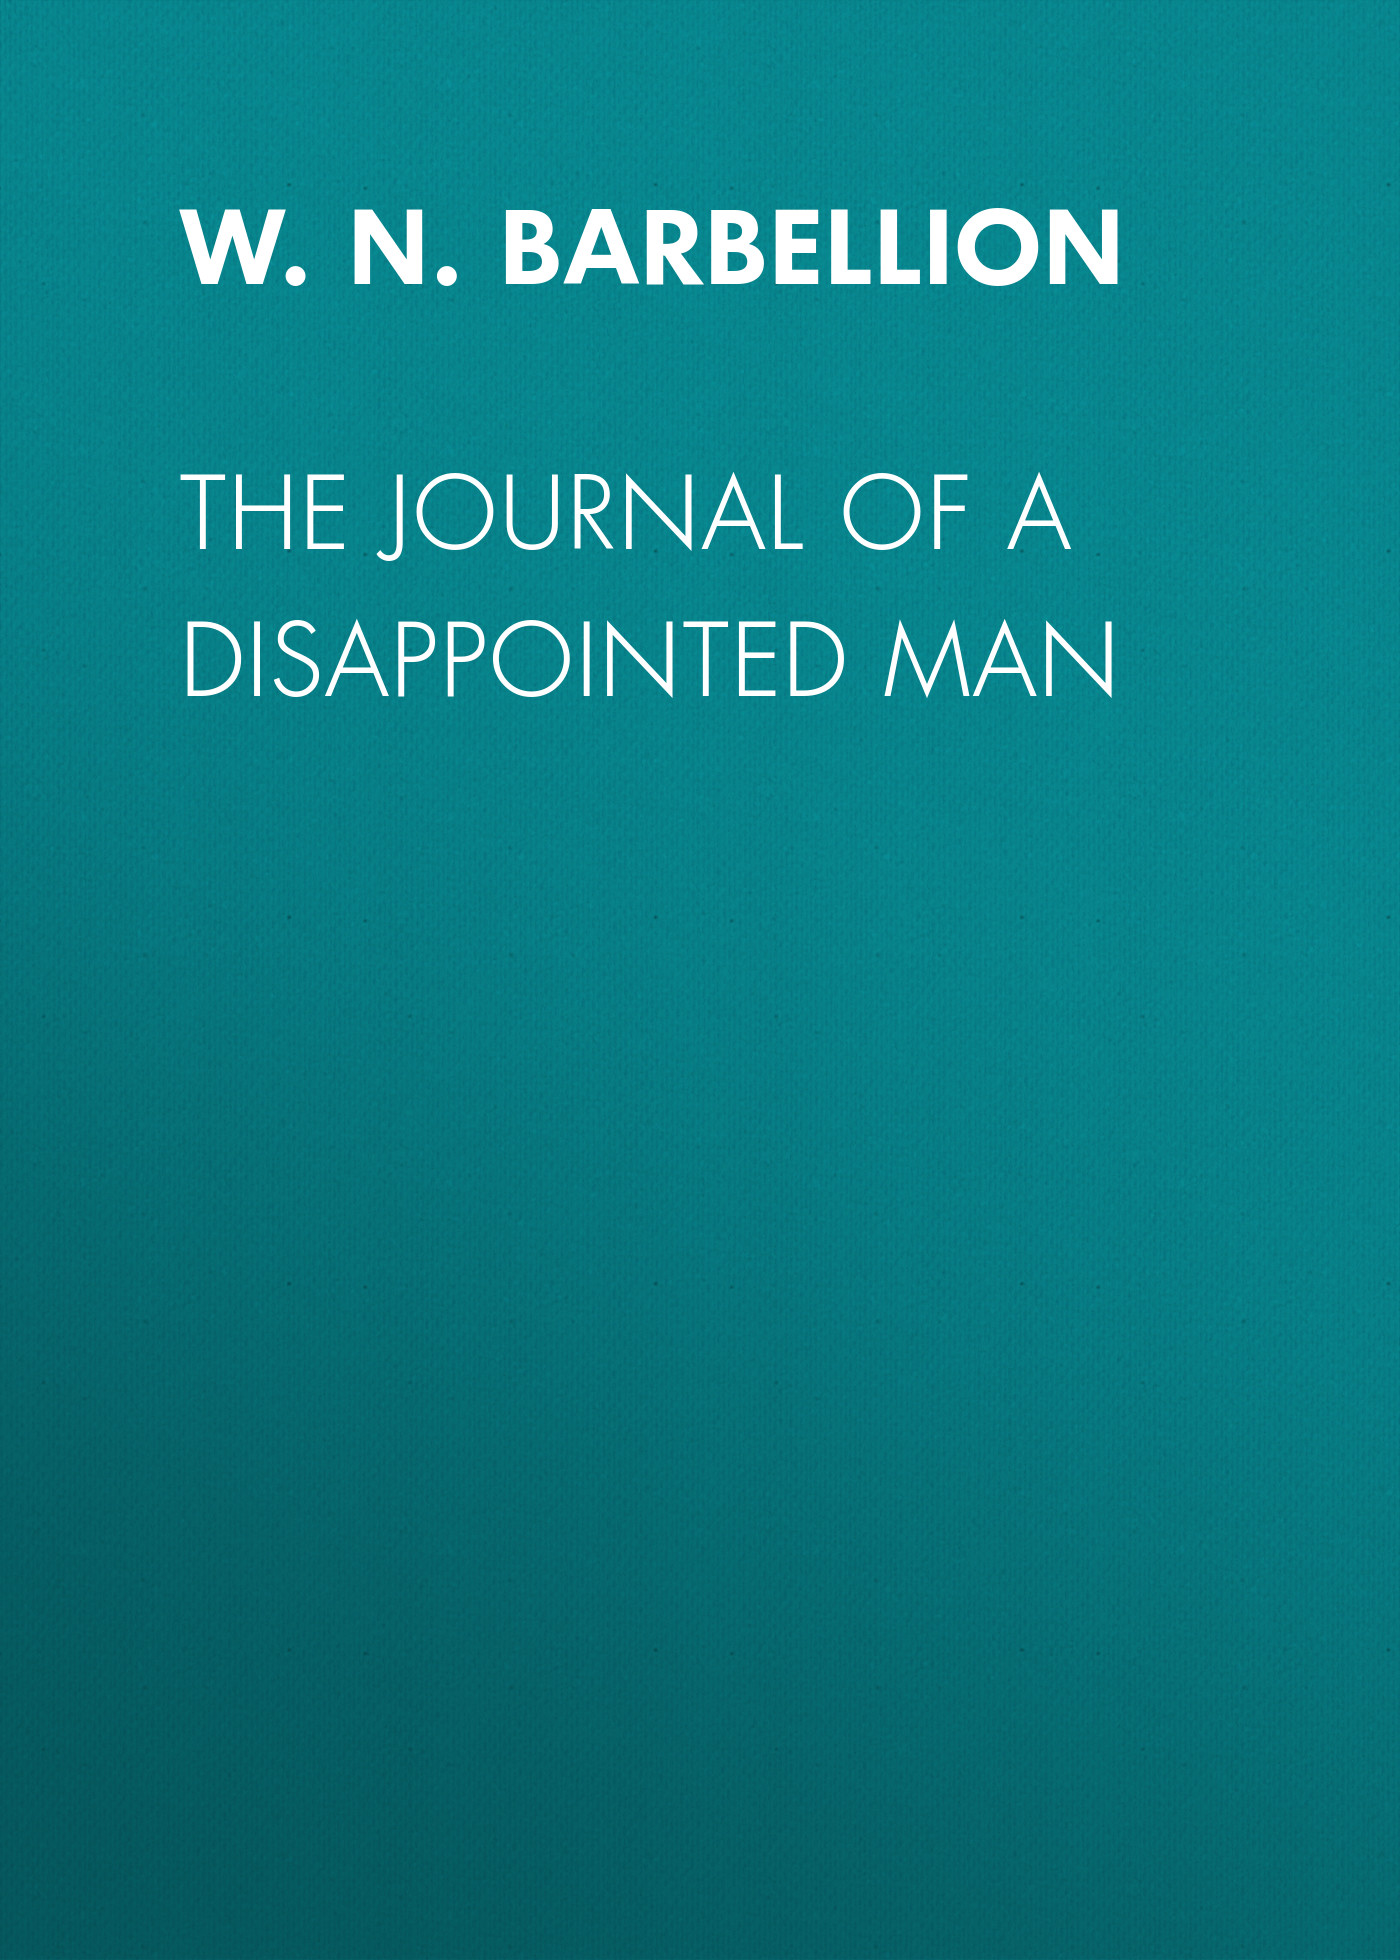 W.N.P. Barbellion The Journal of a Disappointed Man